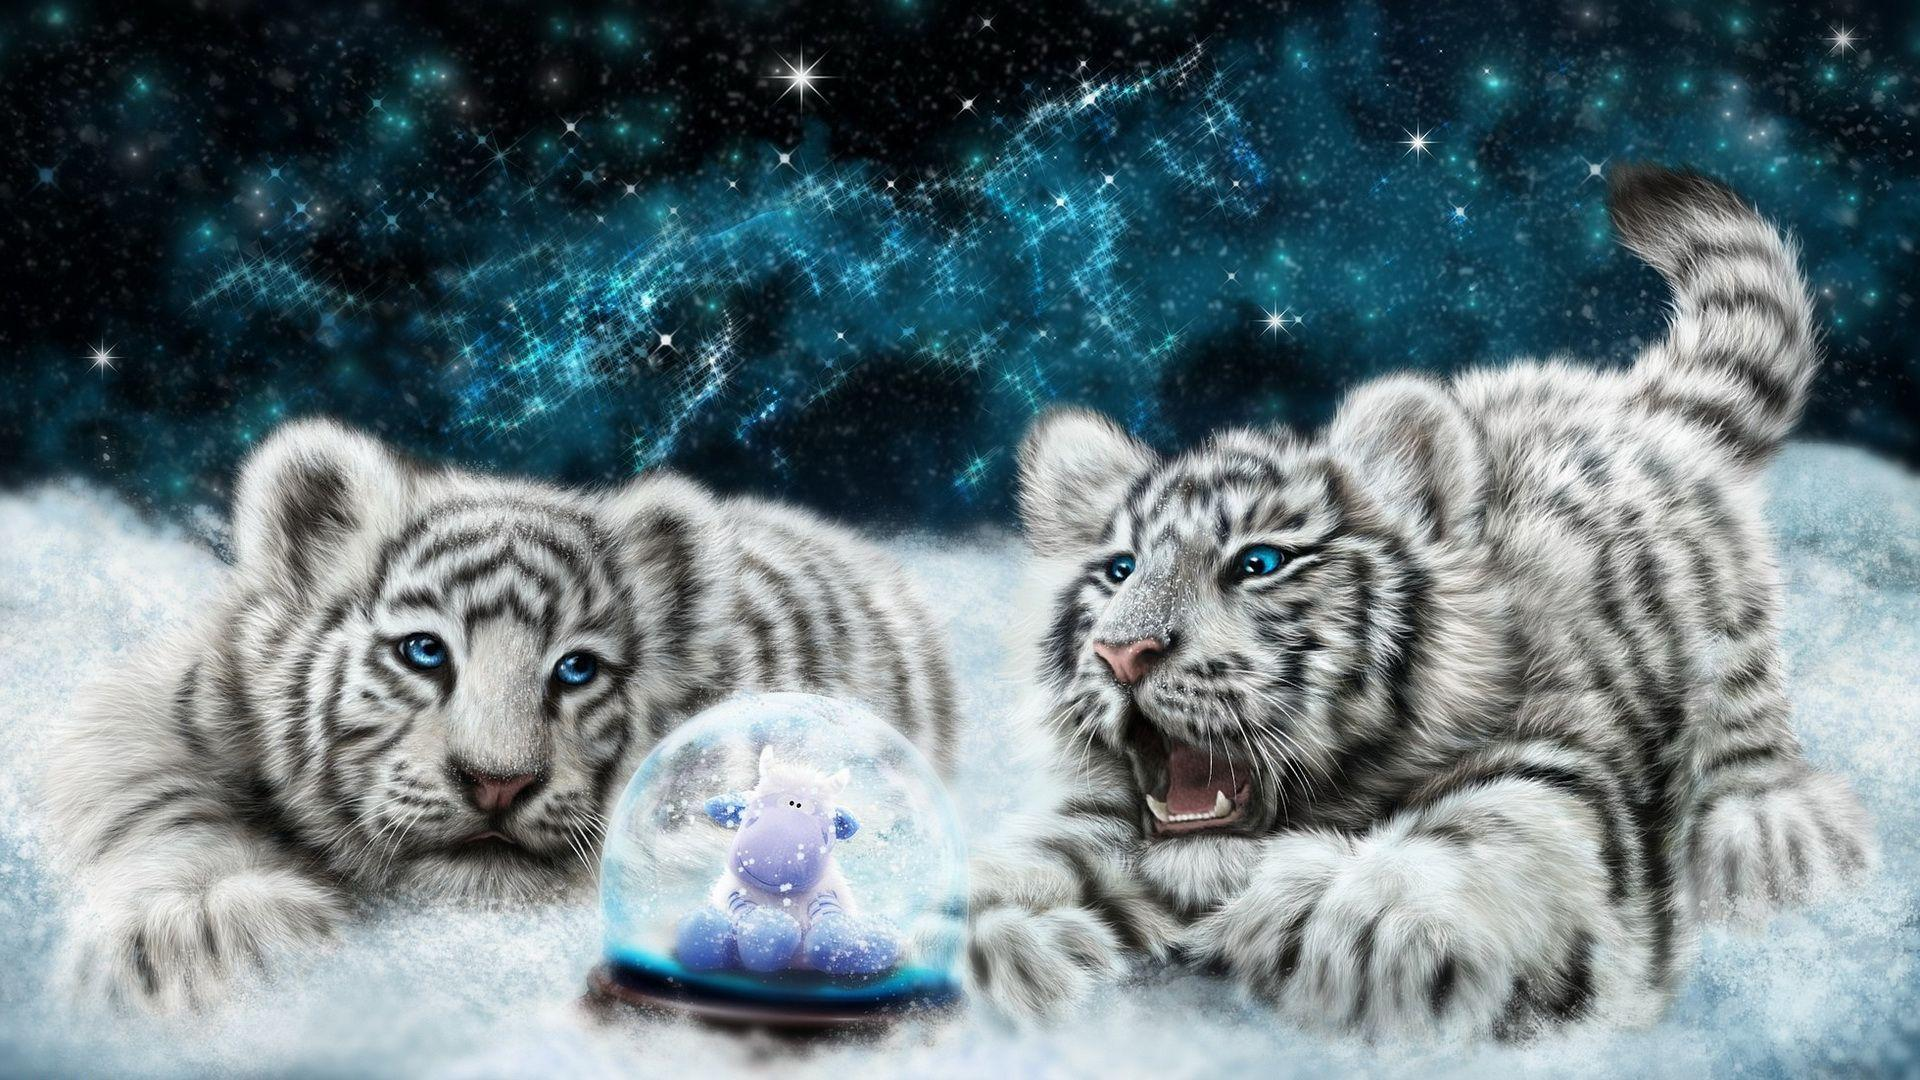 Animated Snow Wallpaper White Tiger Cubs Looking At The Snowglobe Hd Desktop